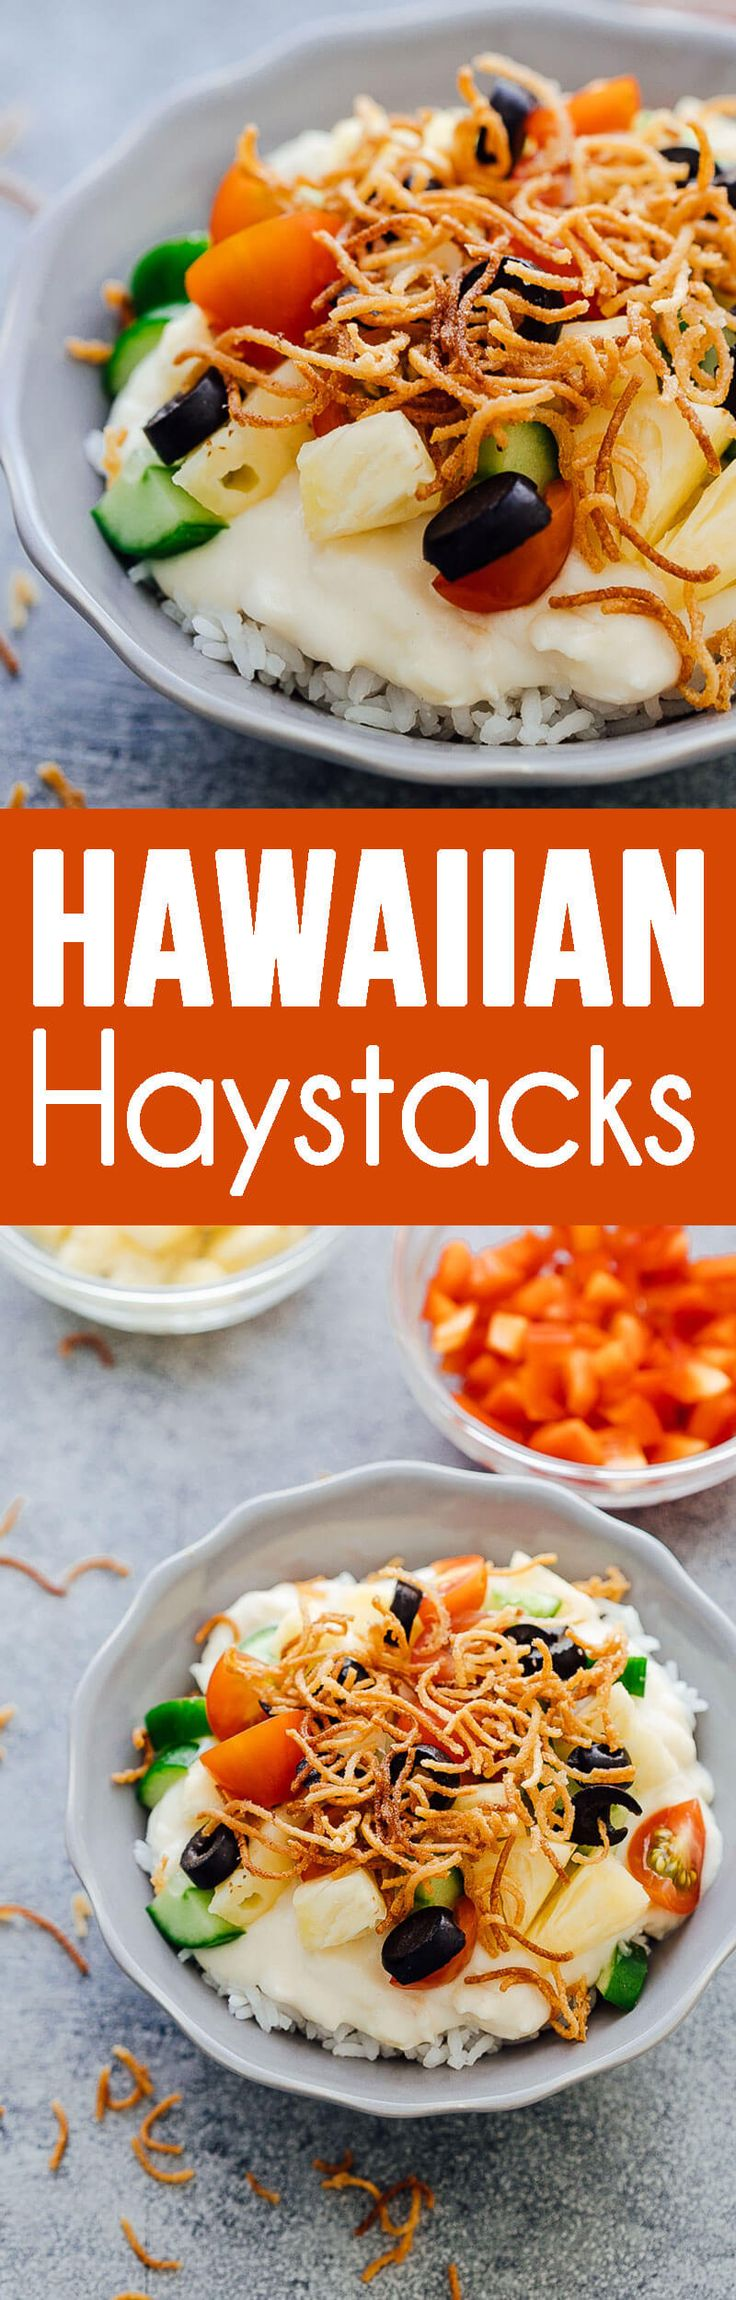 Hawaiian Haystacks are made up of creamy chicken and topped with lots of fun toppings.